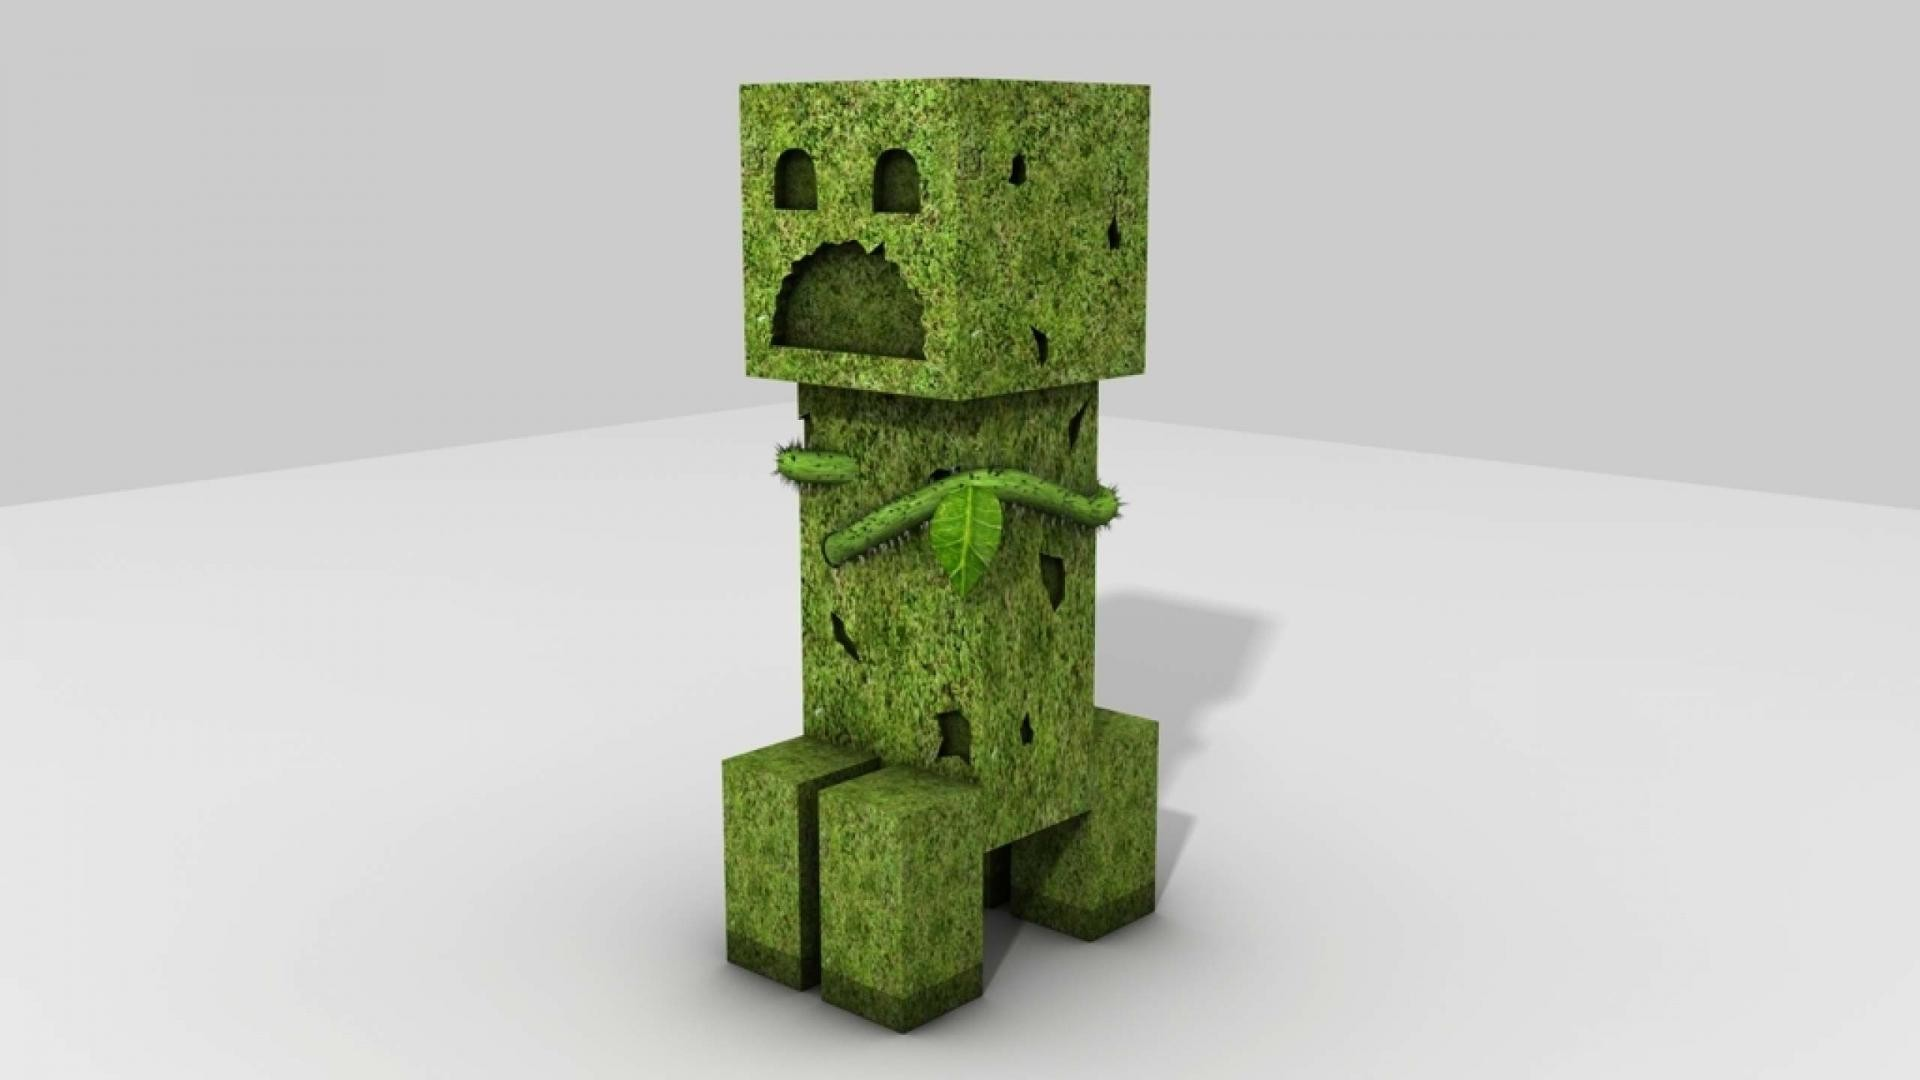 Res: 1920x1080, Creeper Minecraft Pictures HD Wallpaper Creeper Minecraft Pictures